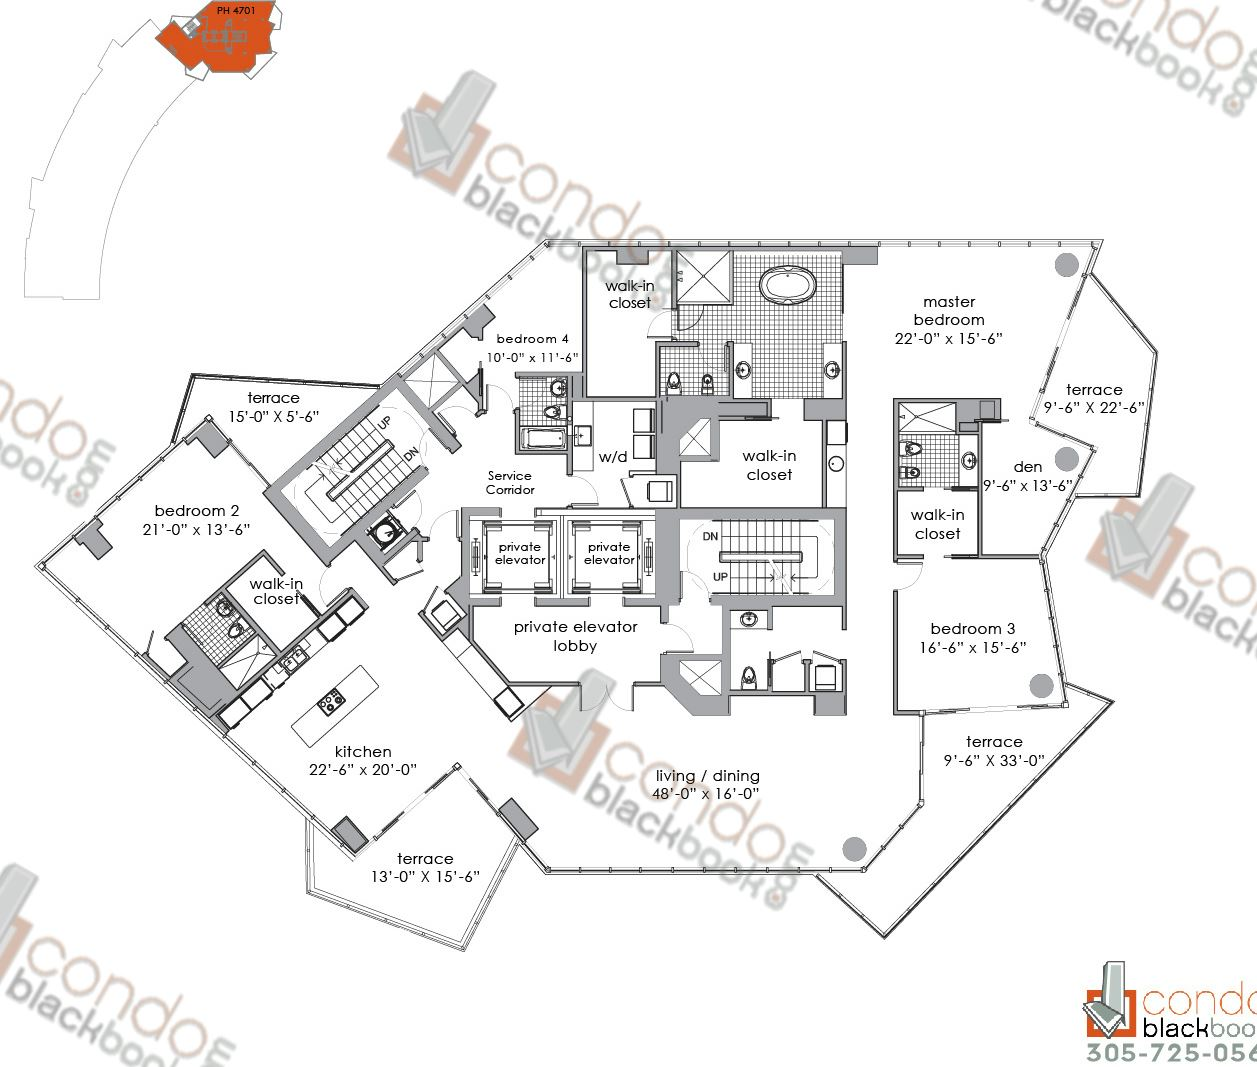 Floor plan for Paramount Bay Edgewater Miami, model PENTHOUSE 4701, line 01, 4+Den/4,5 bedrooms, 4,437 sq ft